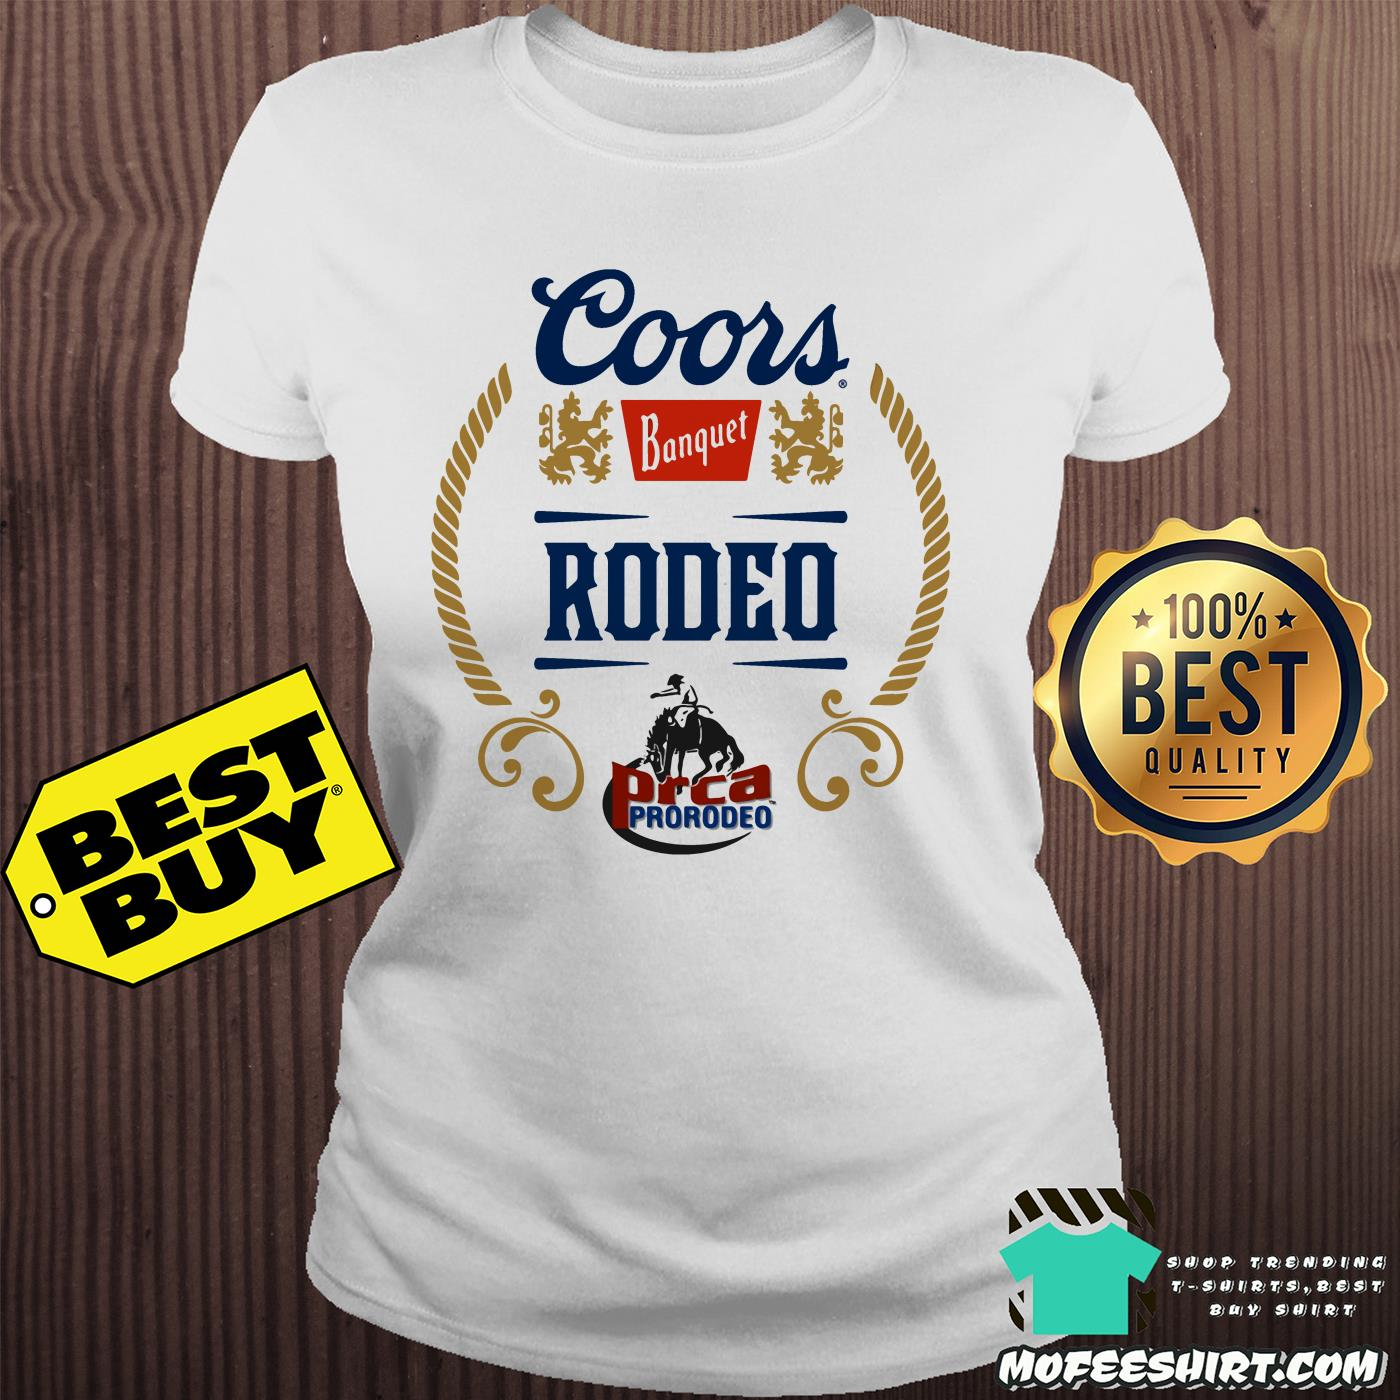 coors banquet rodeo prca prorodeo vintage ladies tee - Coors Banquet Rodeo PRCA Prorodeo Vintage shirt